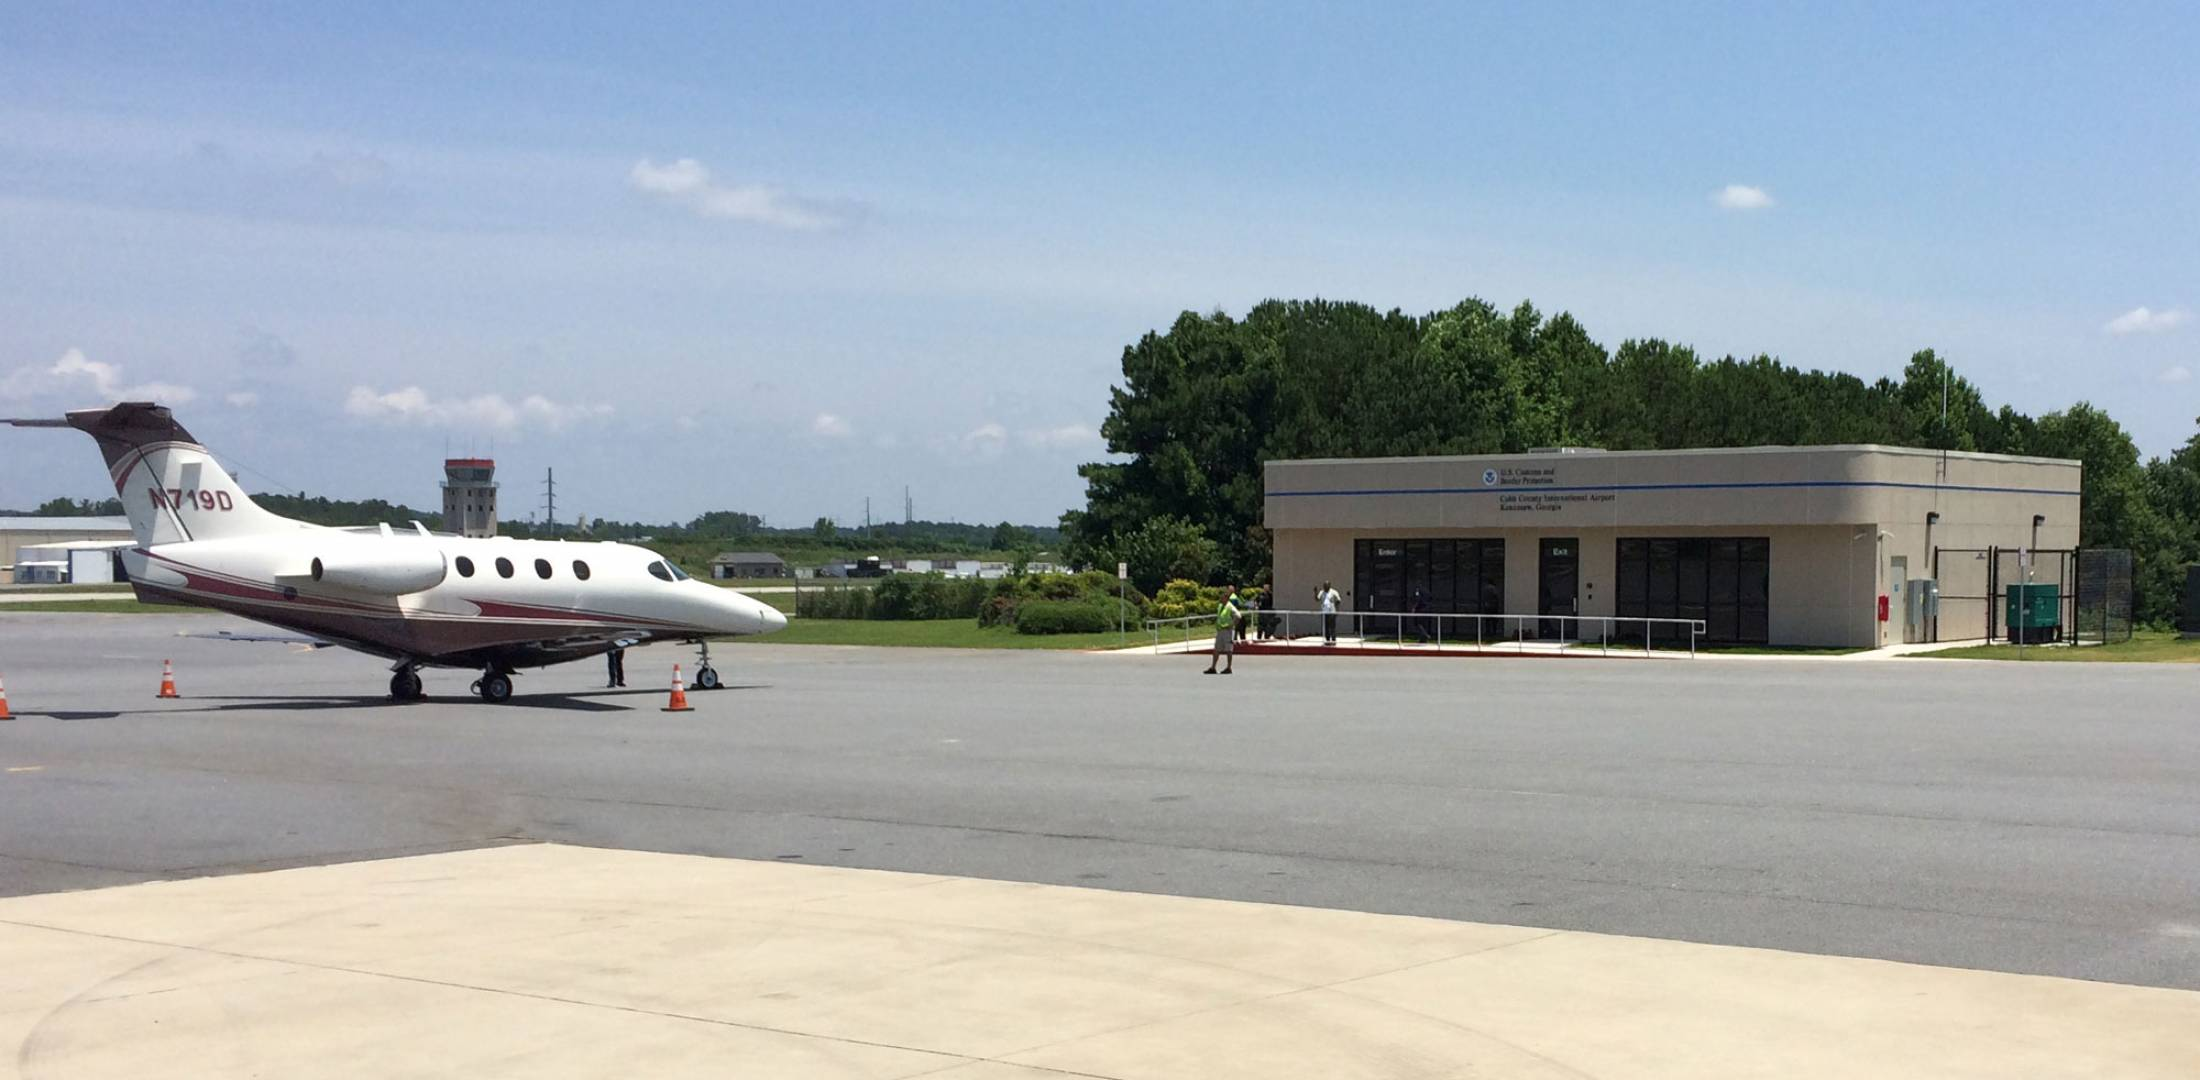 U.S. Customs at Cobb County Airport